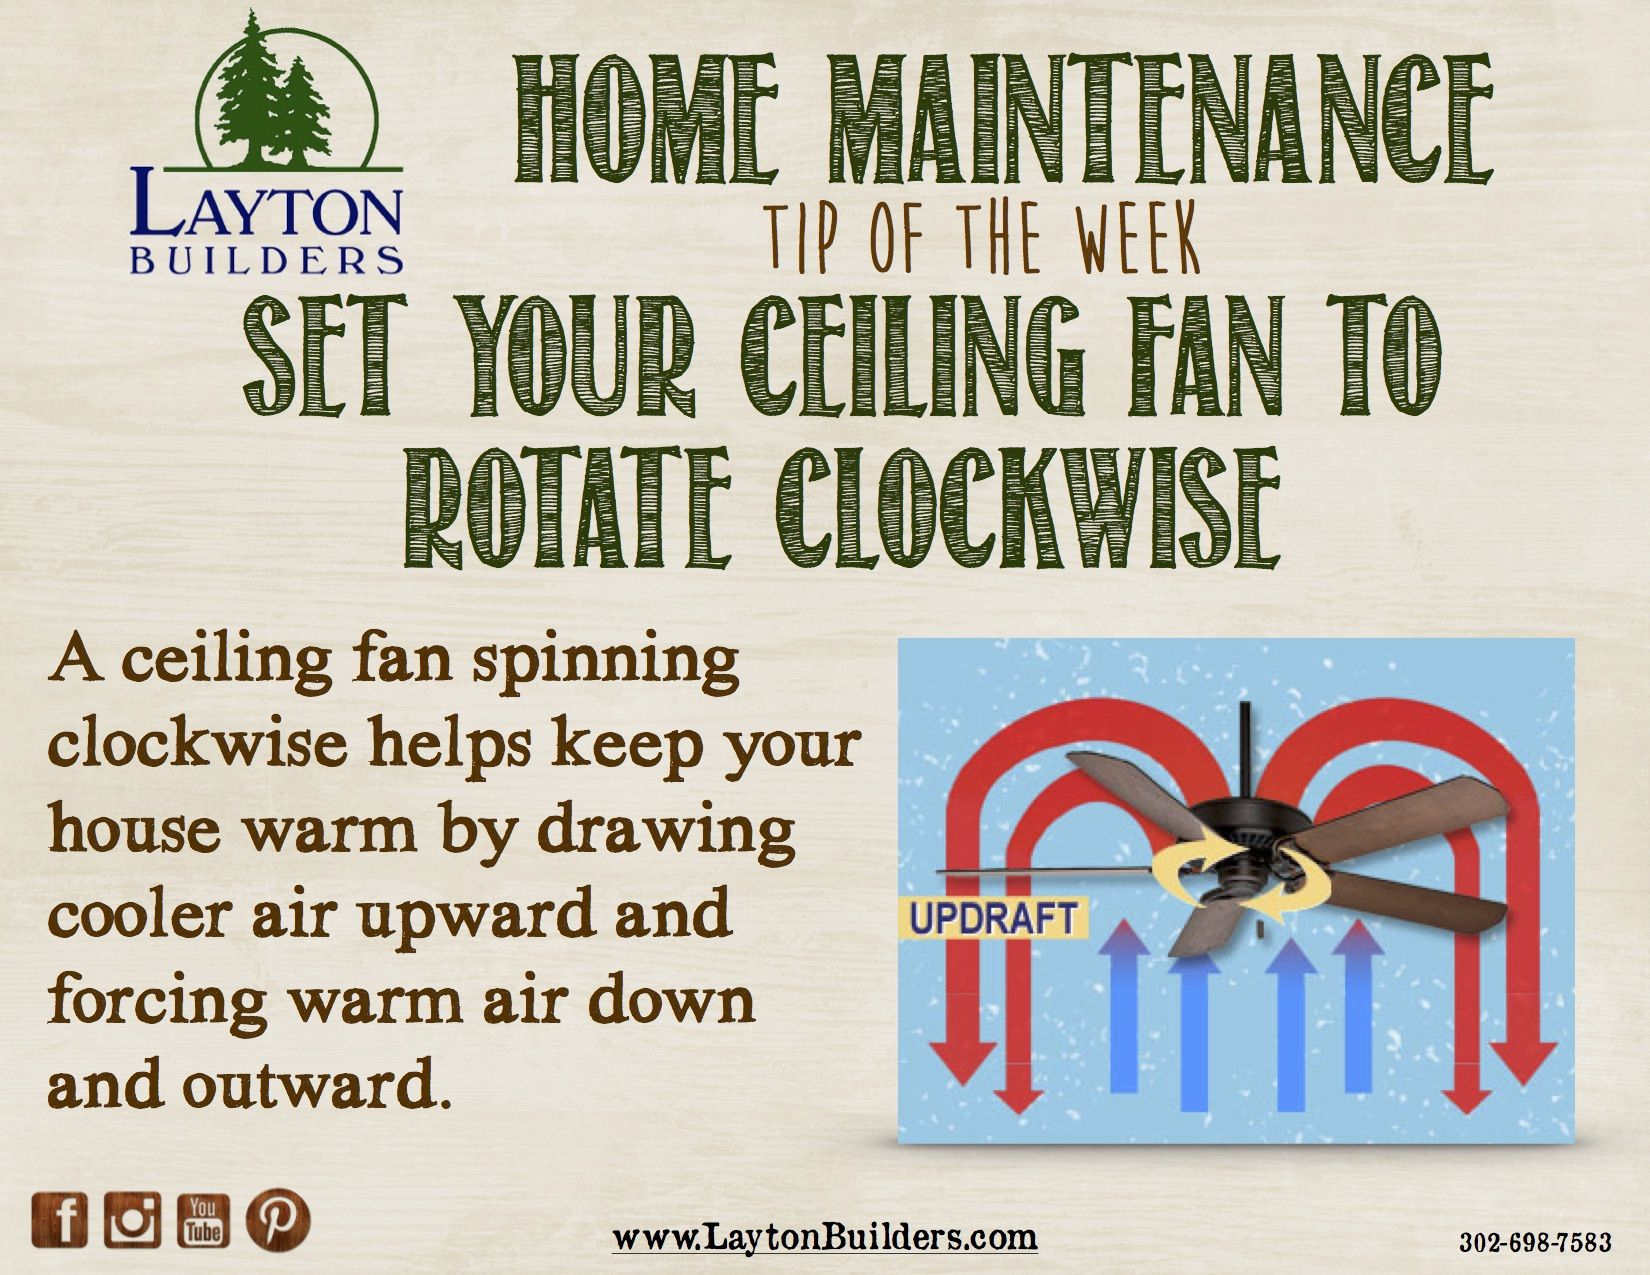 Home Maintenance Tip Of The Week From Layton Builders Home